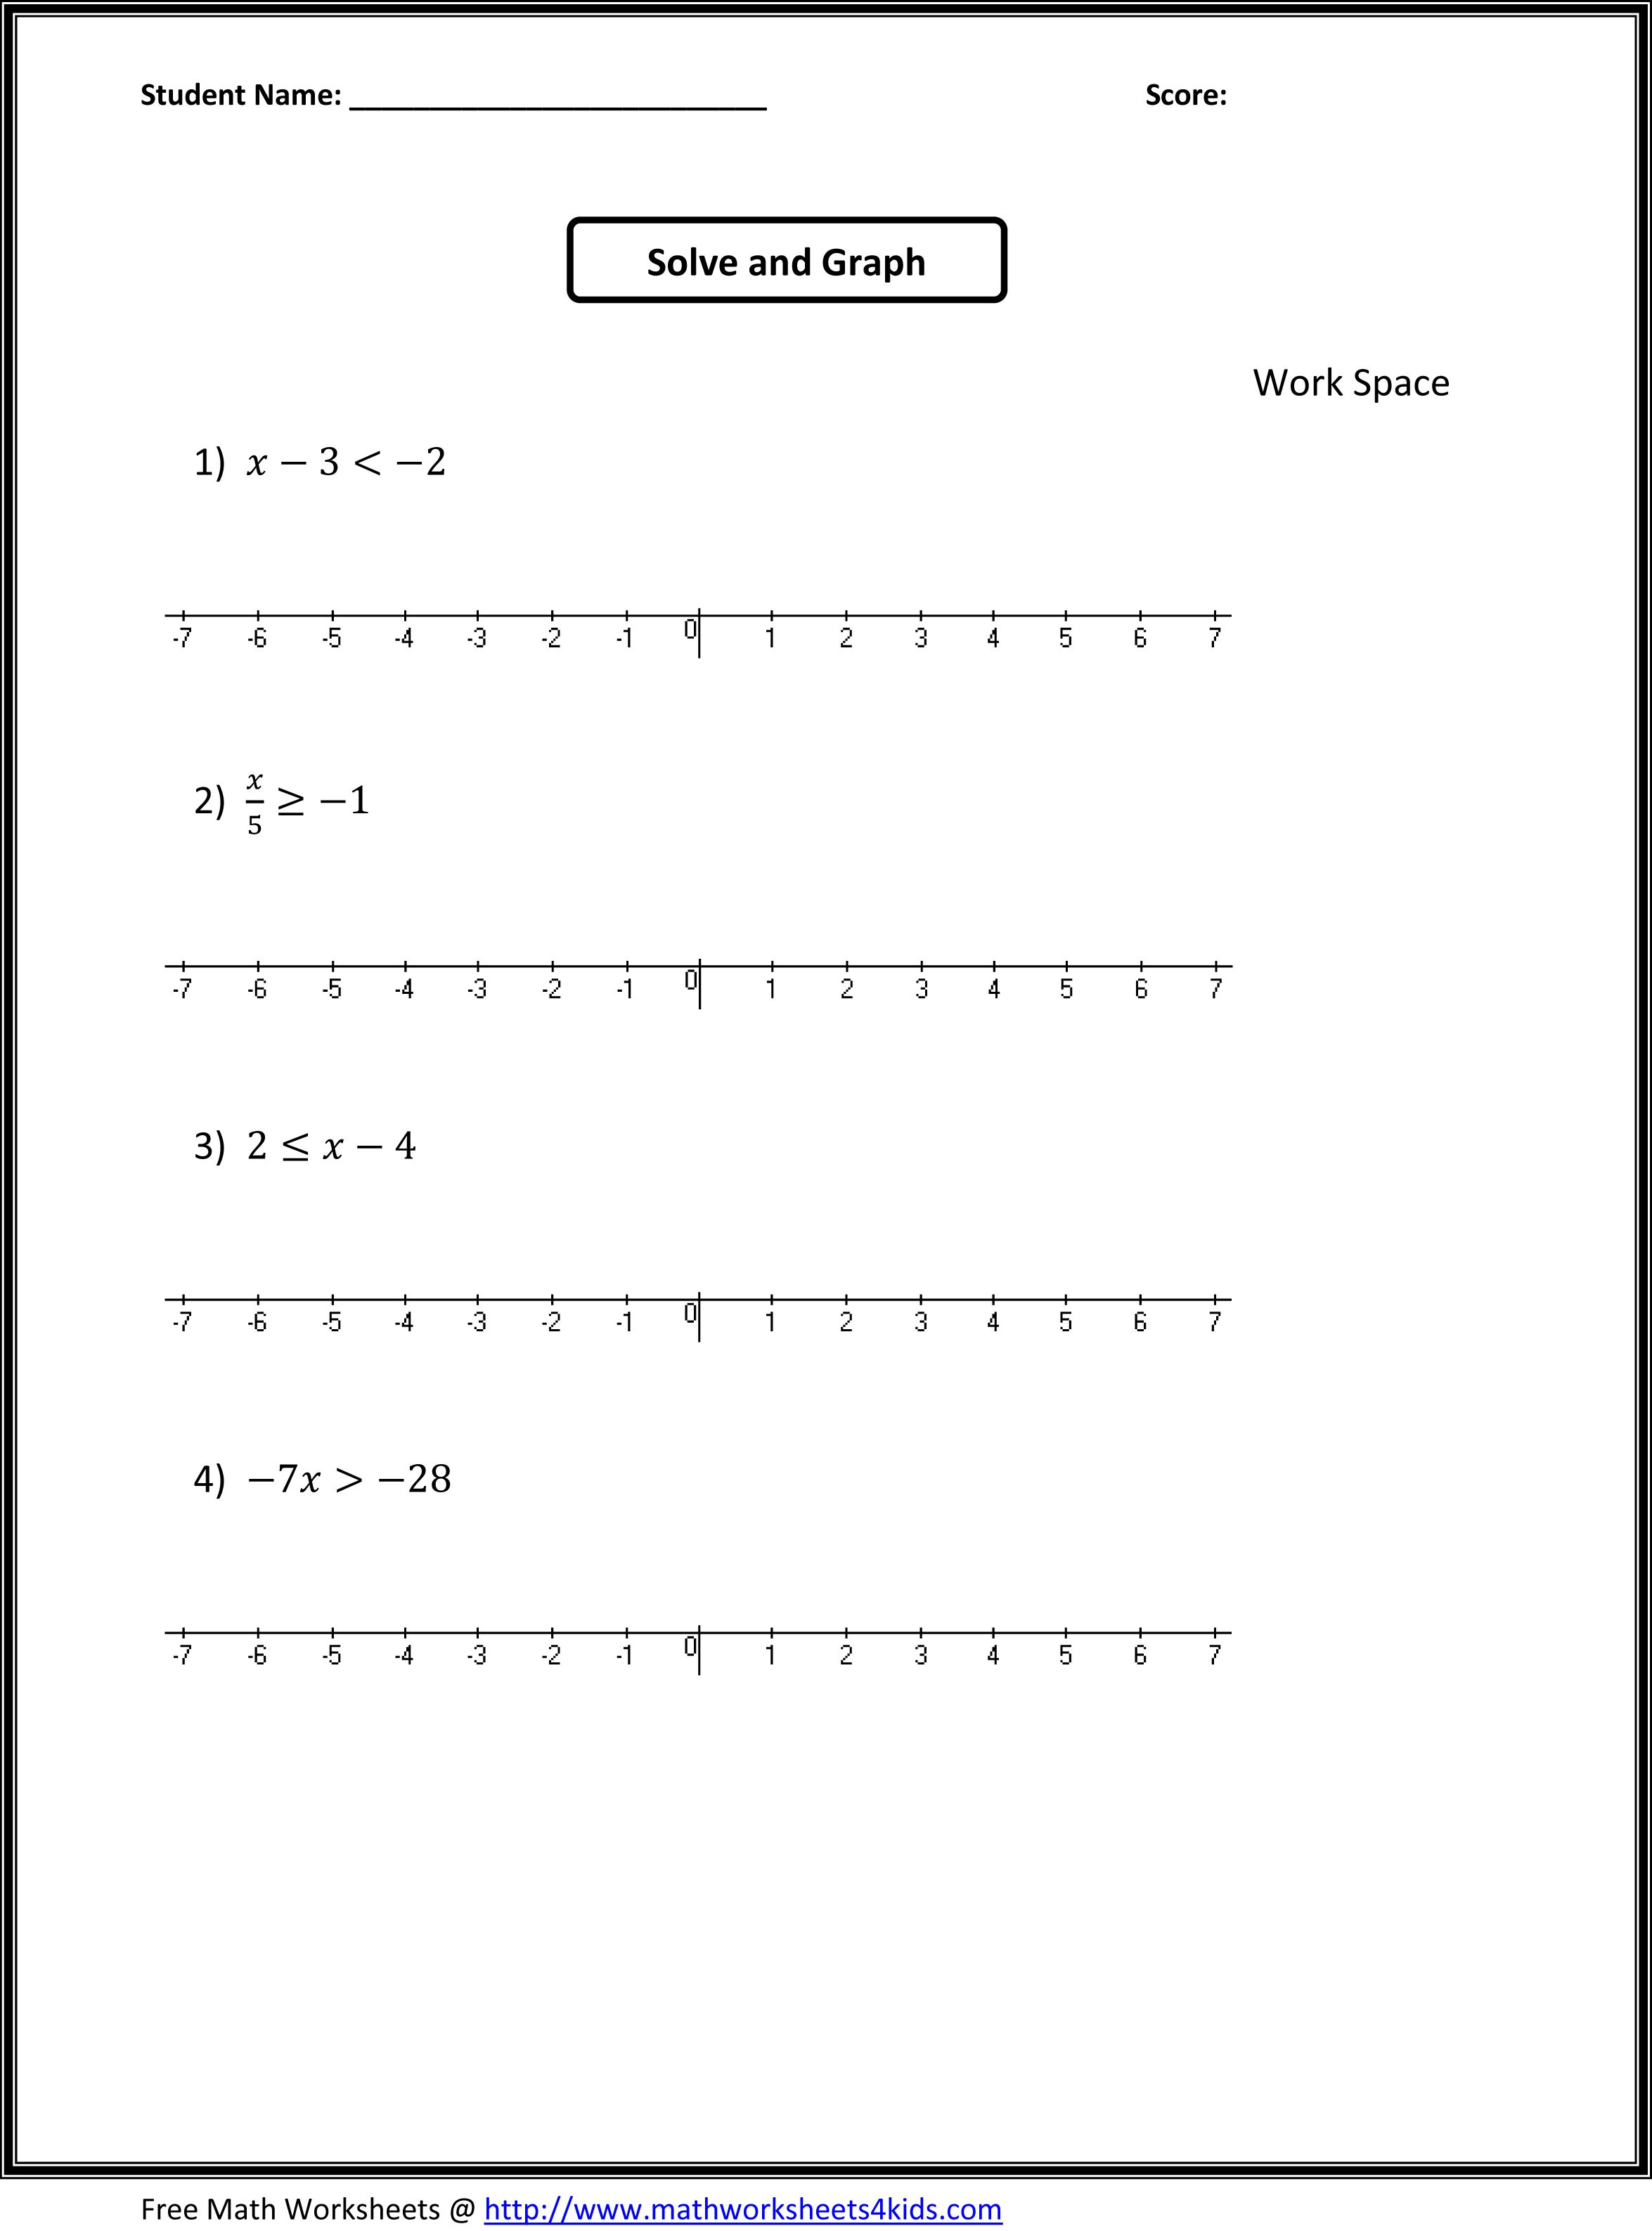 Printables 7th Grade Math Worksheets With Answer Key printable 7th grade math worksheets syndeomedia 1000 images about on pinterest activities fractions worksheets